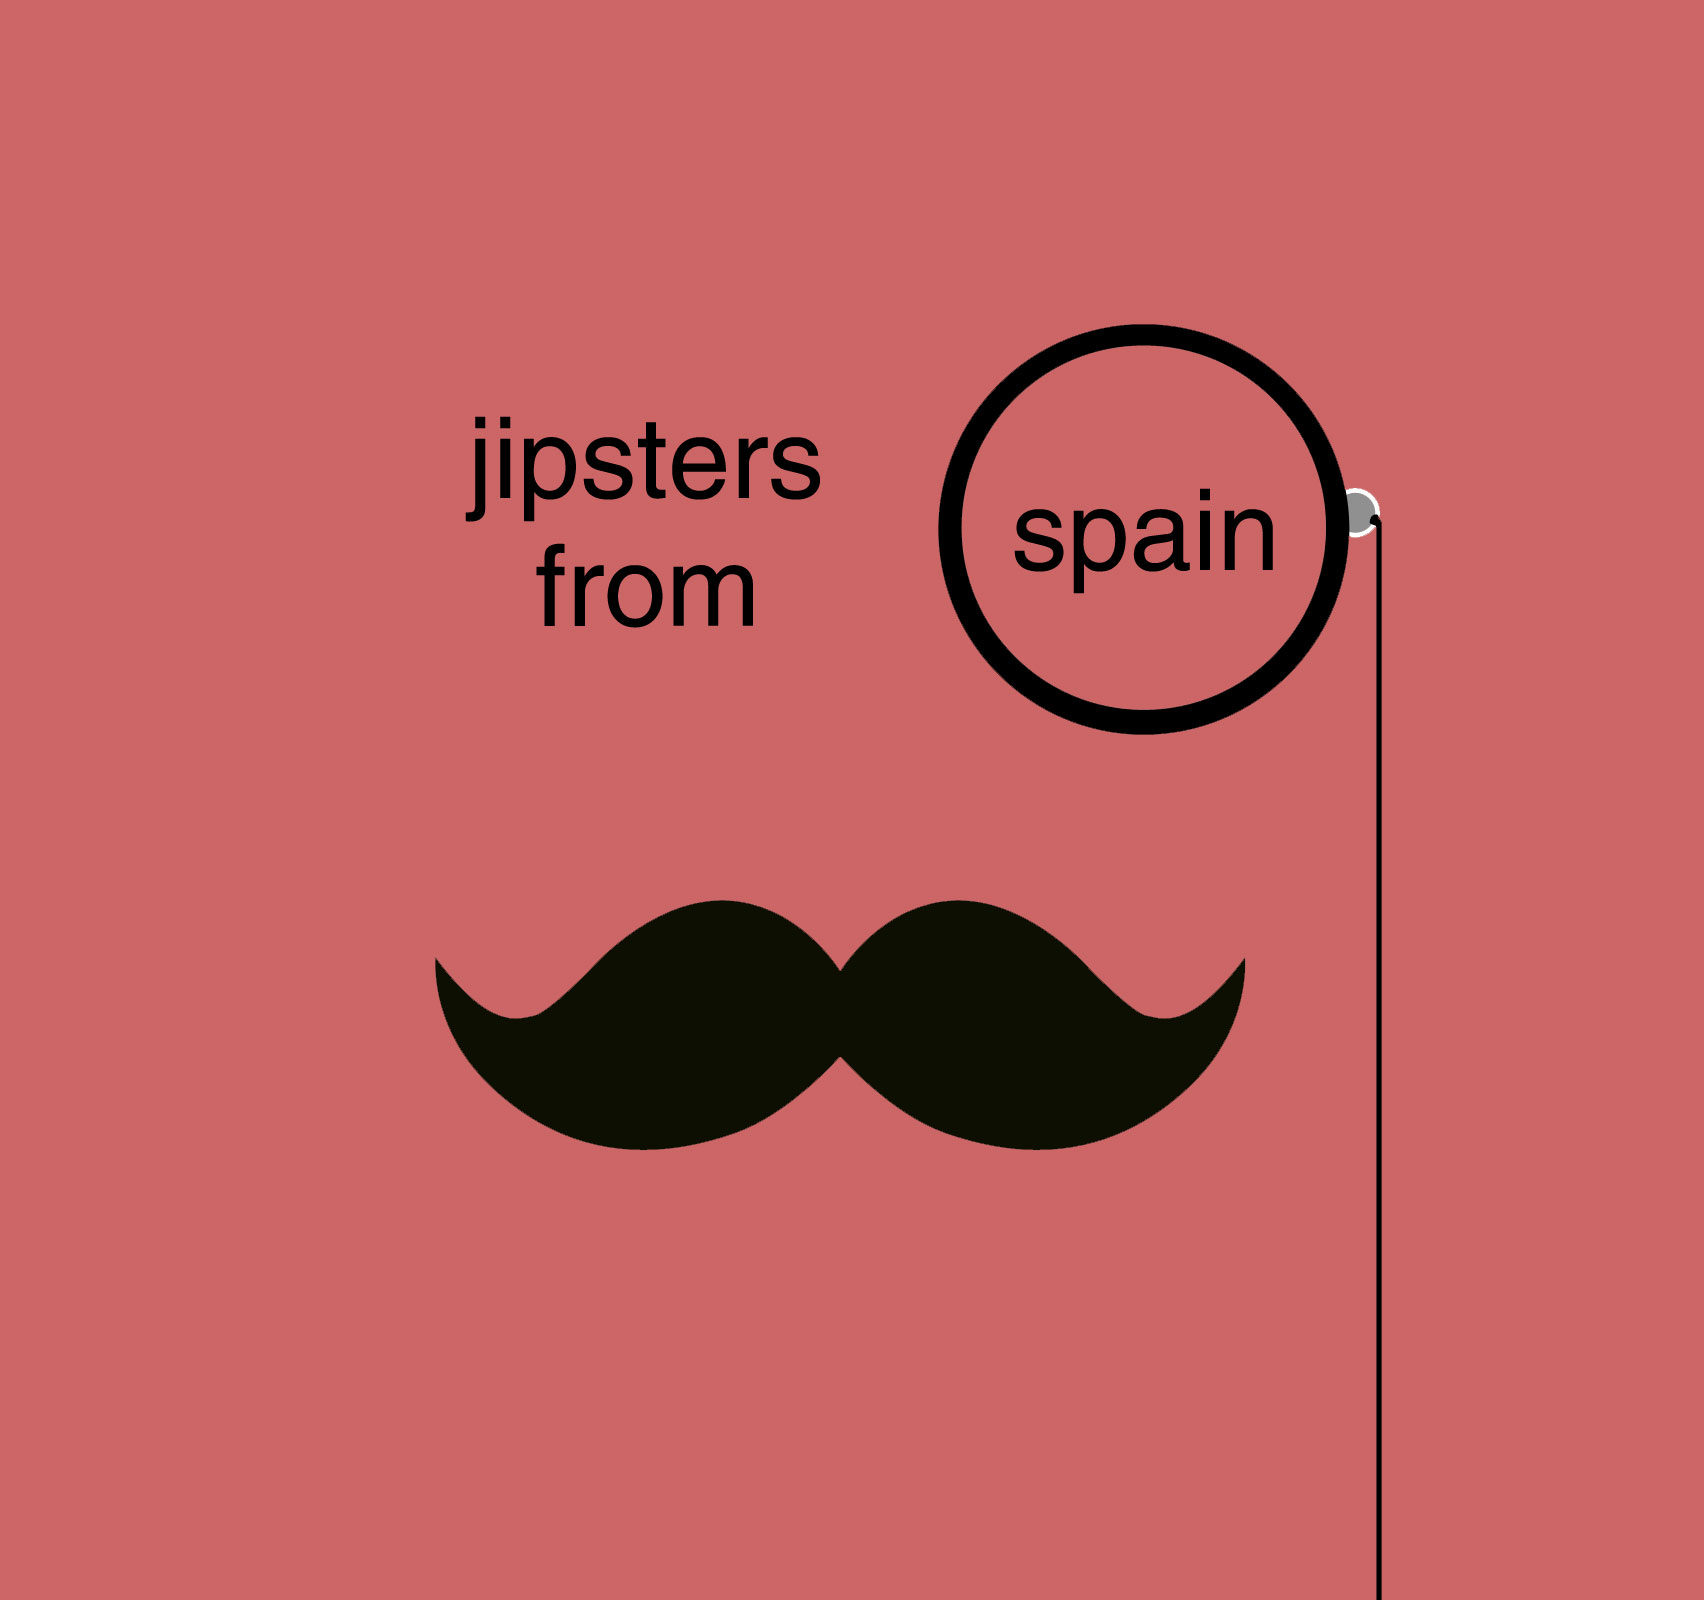 jipsters from spain